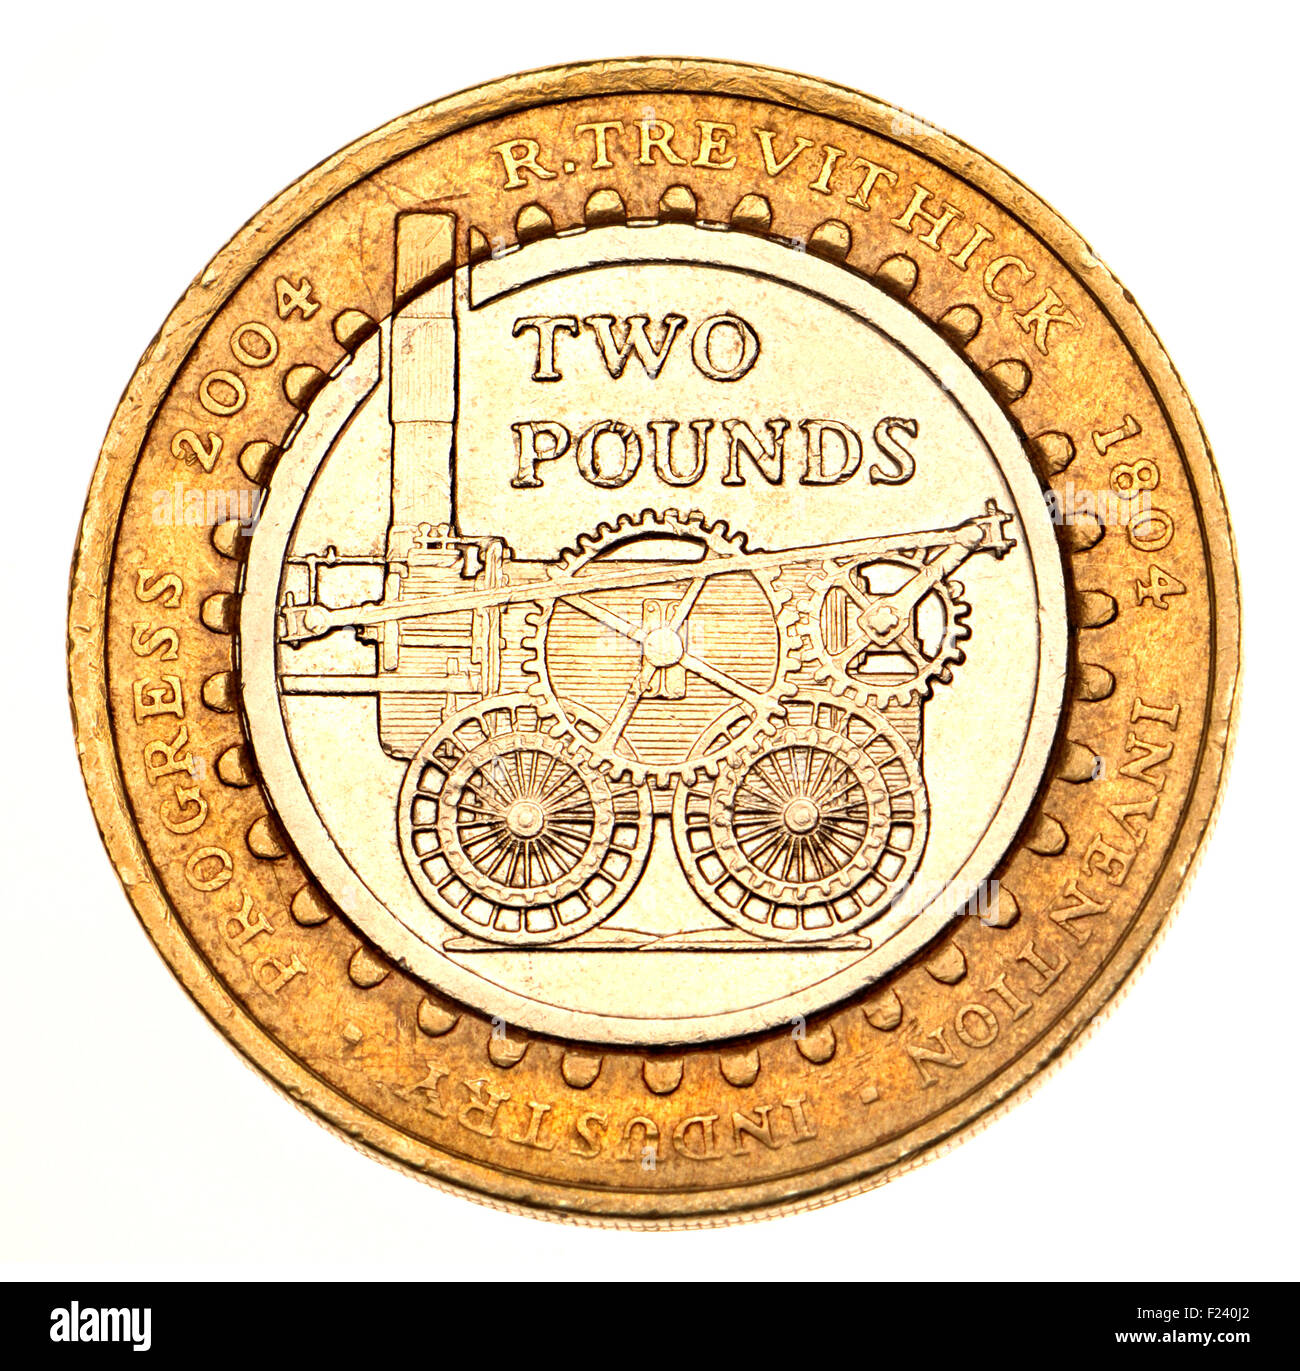 British commemorative £2 coin (2004) celebrating the 200th Anniversary of the first steam locomotive by Richard - Stock Image